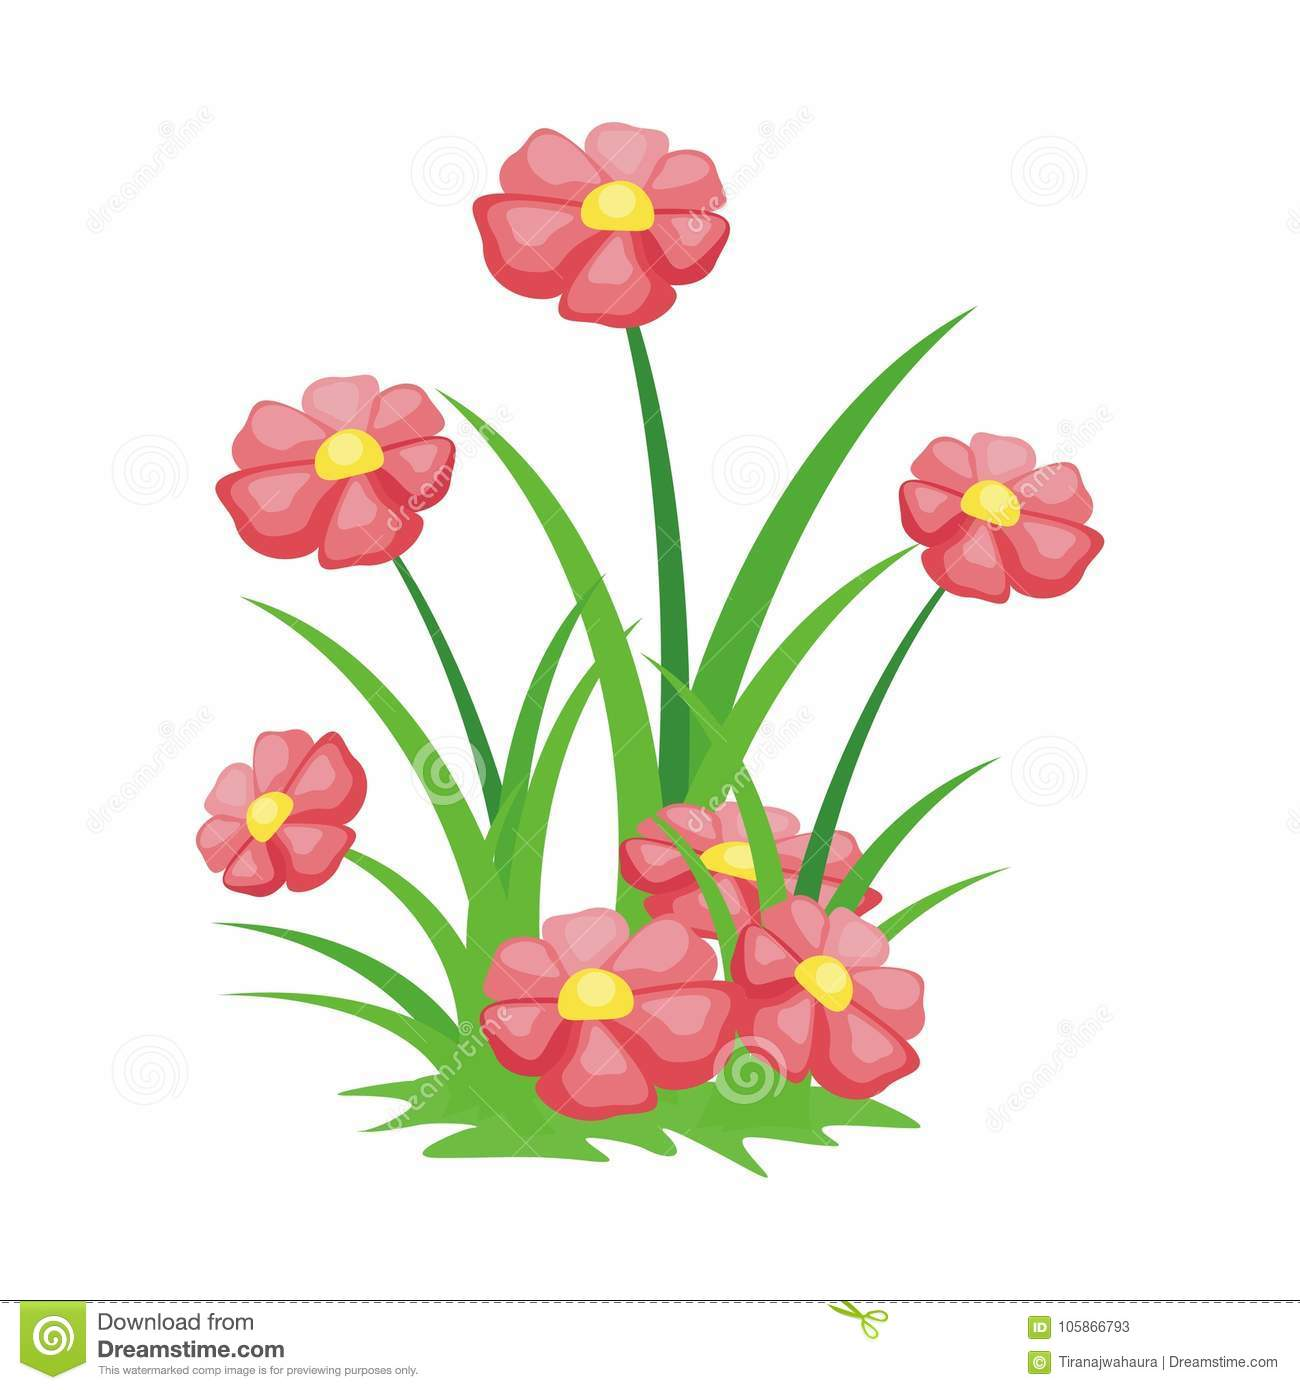 Cartoon Flower Illustration With Lovely And Cute Design Stock Vector Illustration Of Floral Collect 105866793